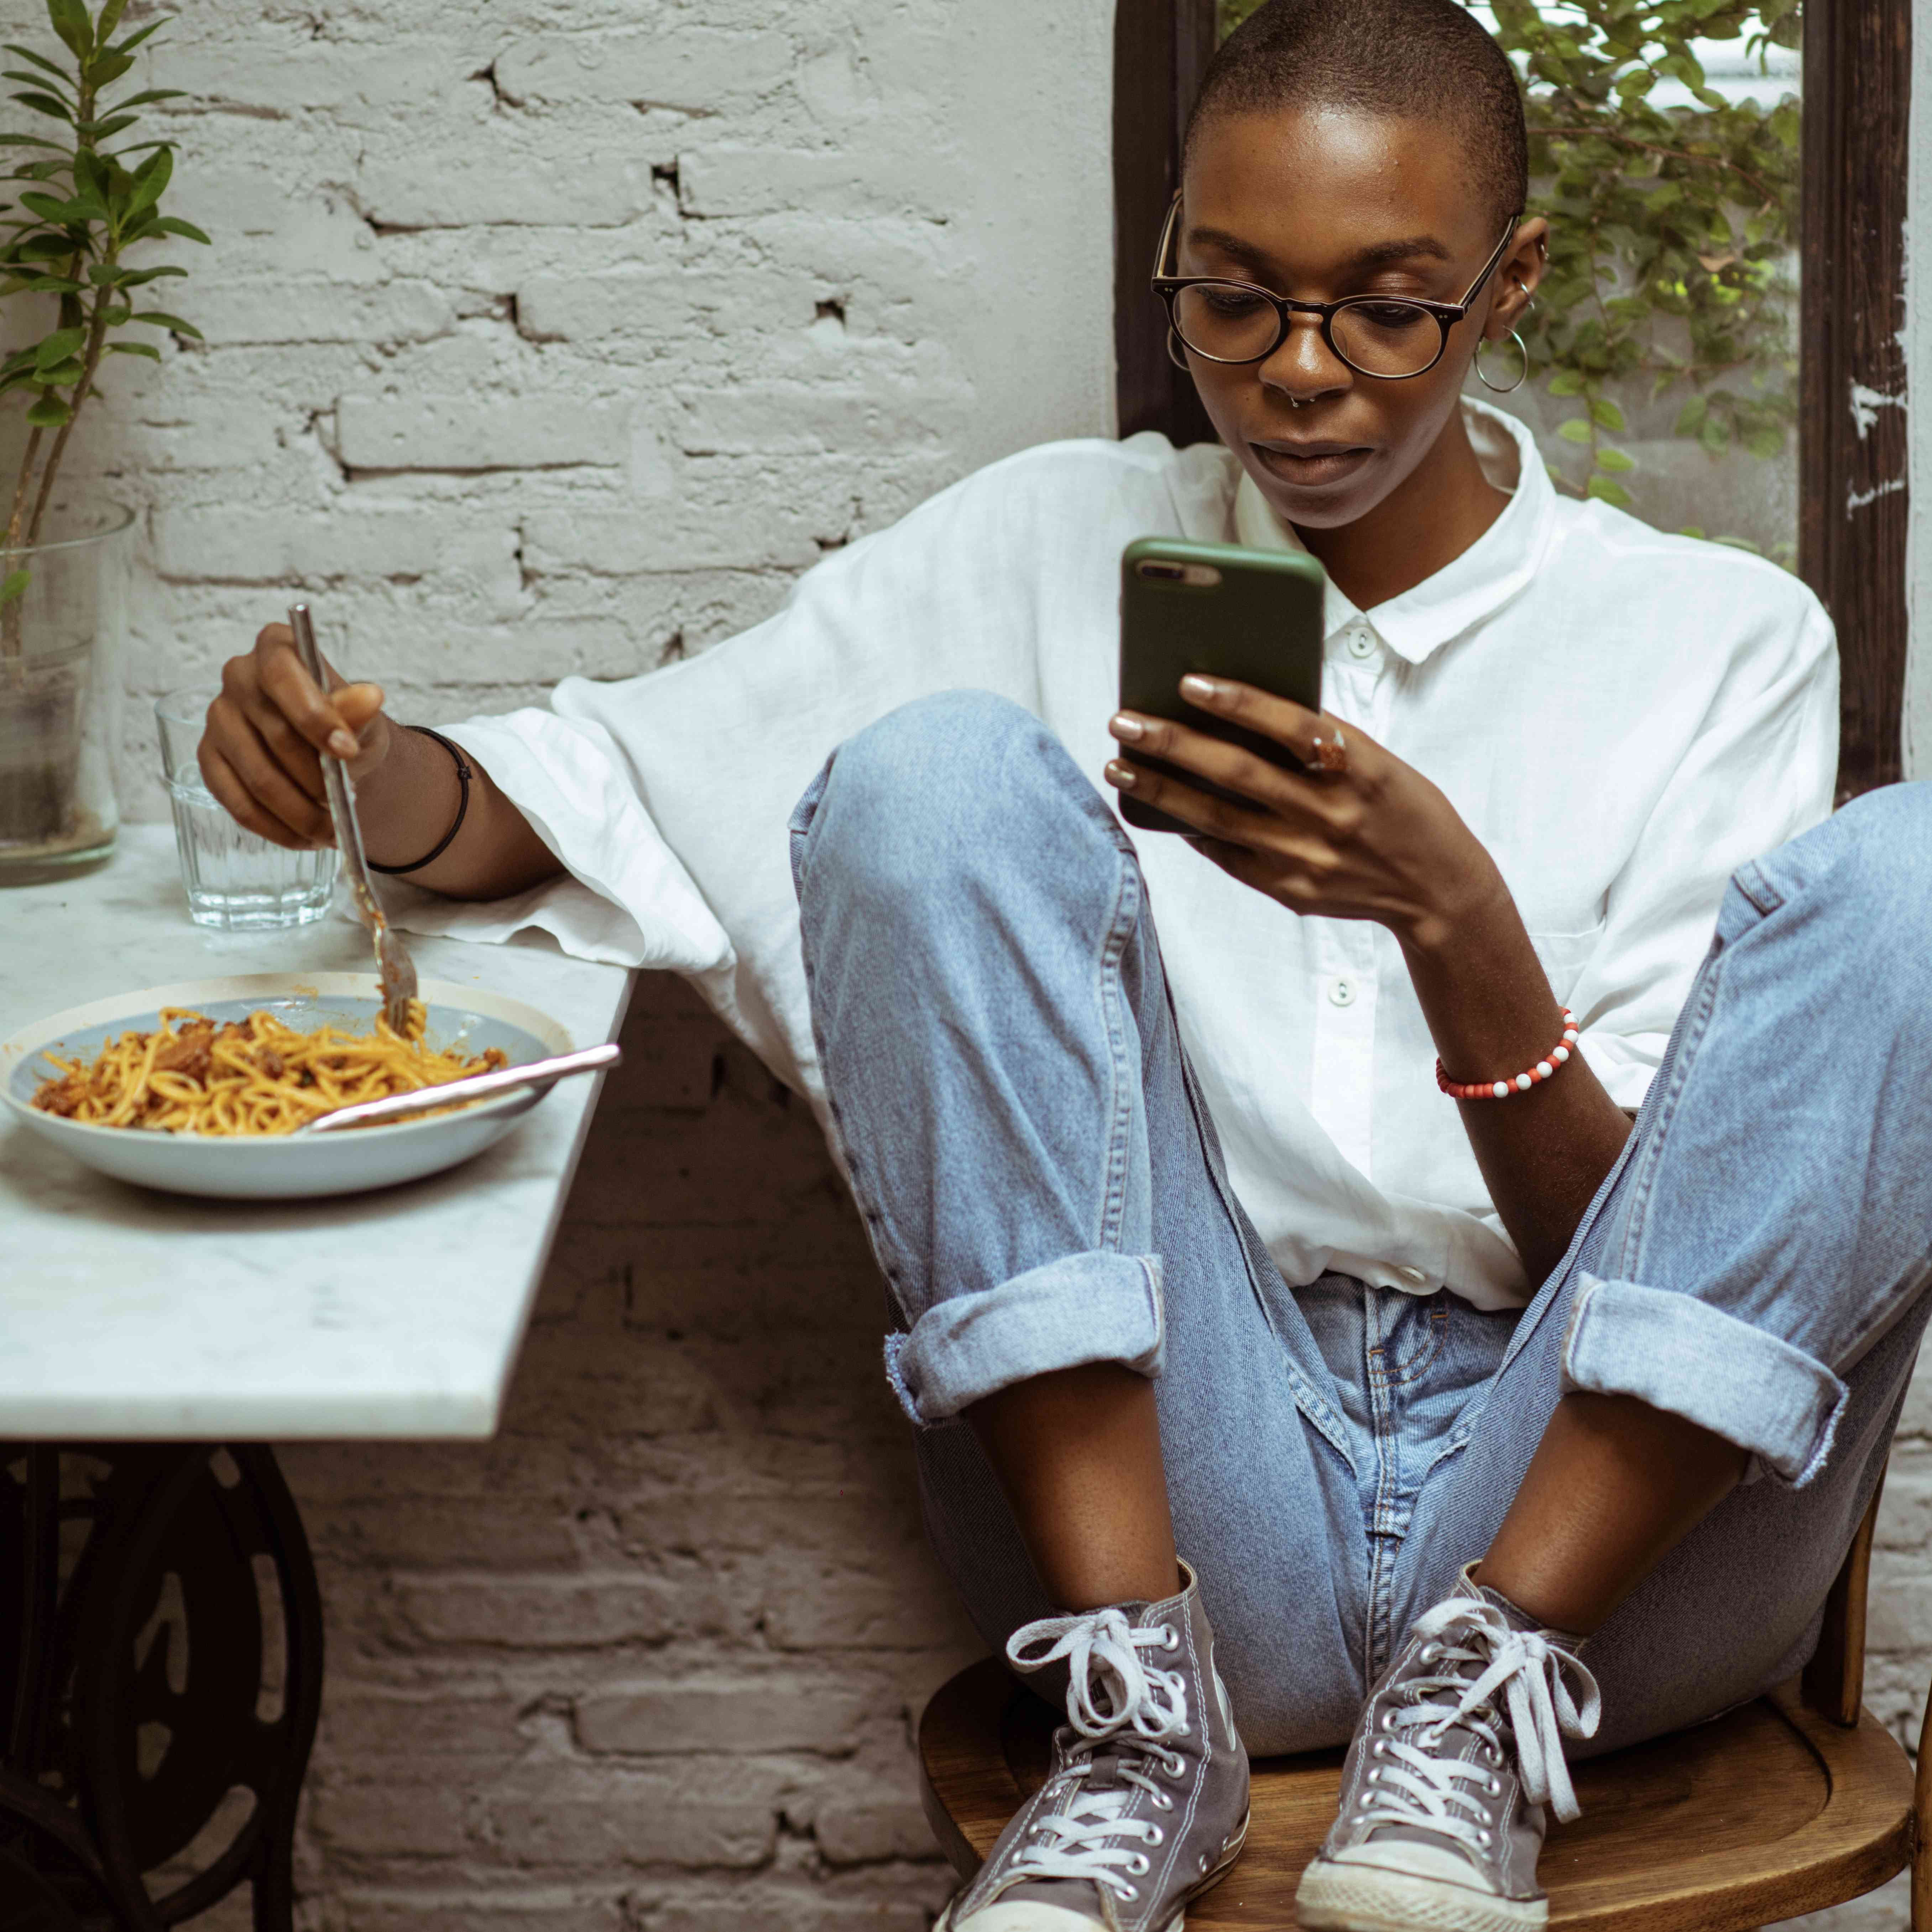 Woman eating pasta on phone